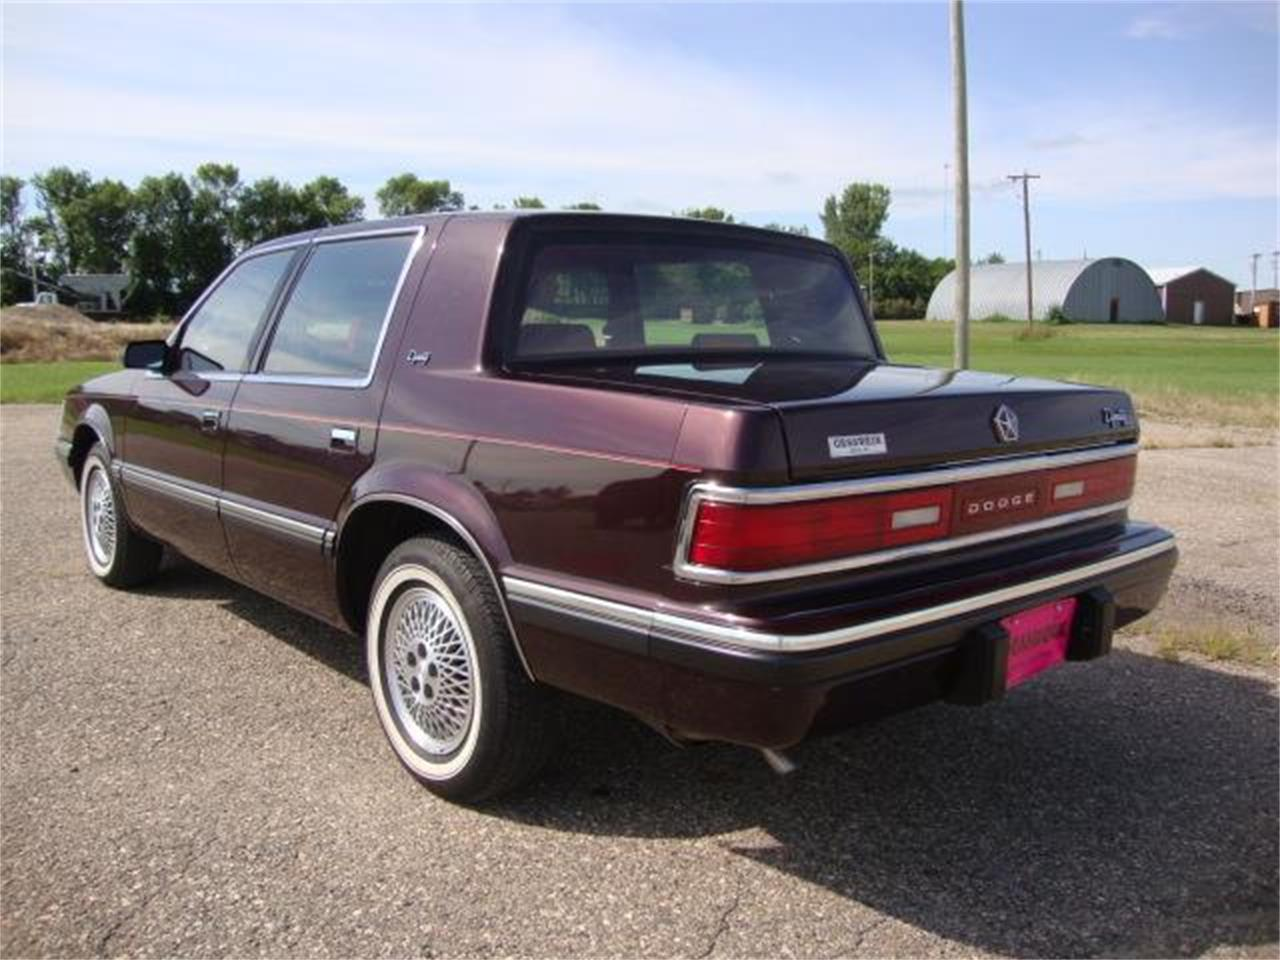 1993 Dodge Dynasty For Sale Classiccars Com Cc 1129489